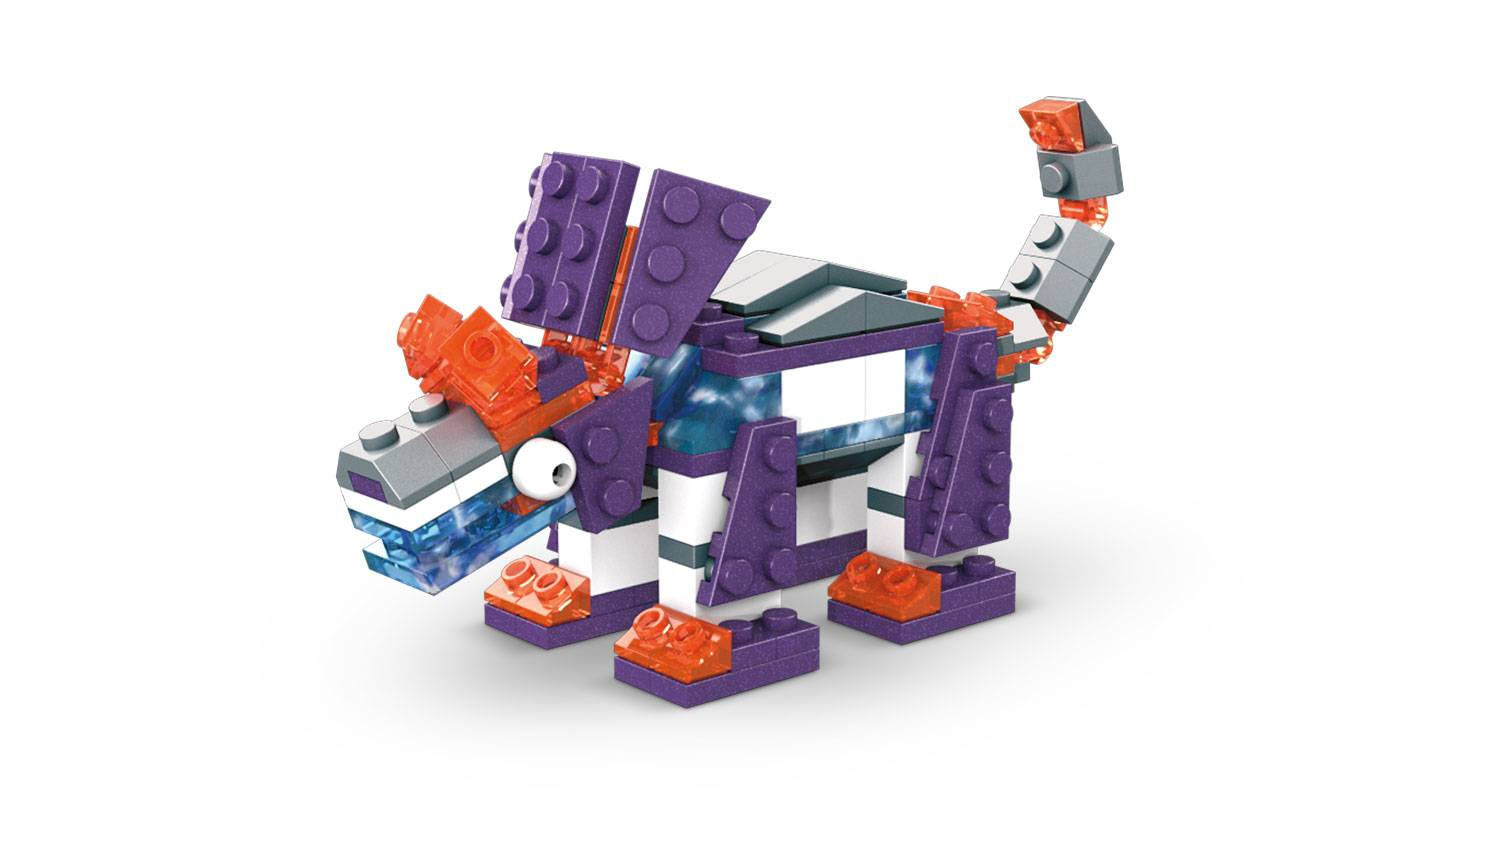 Space Brick Building Set